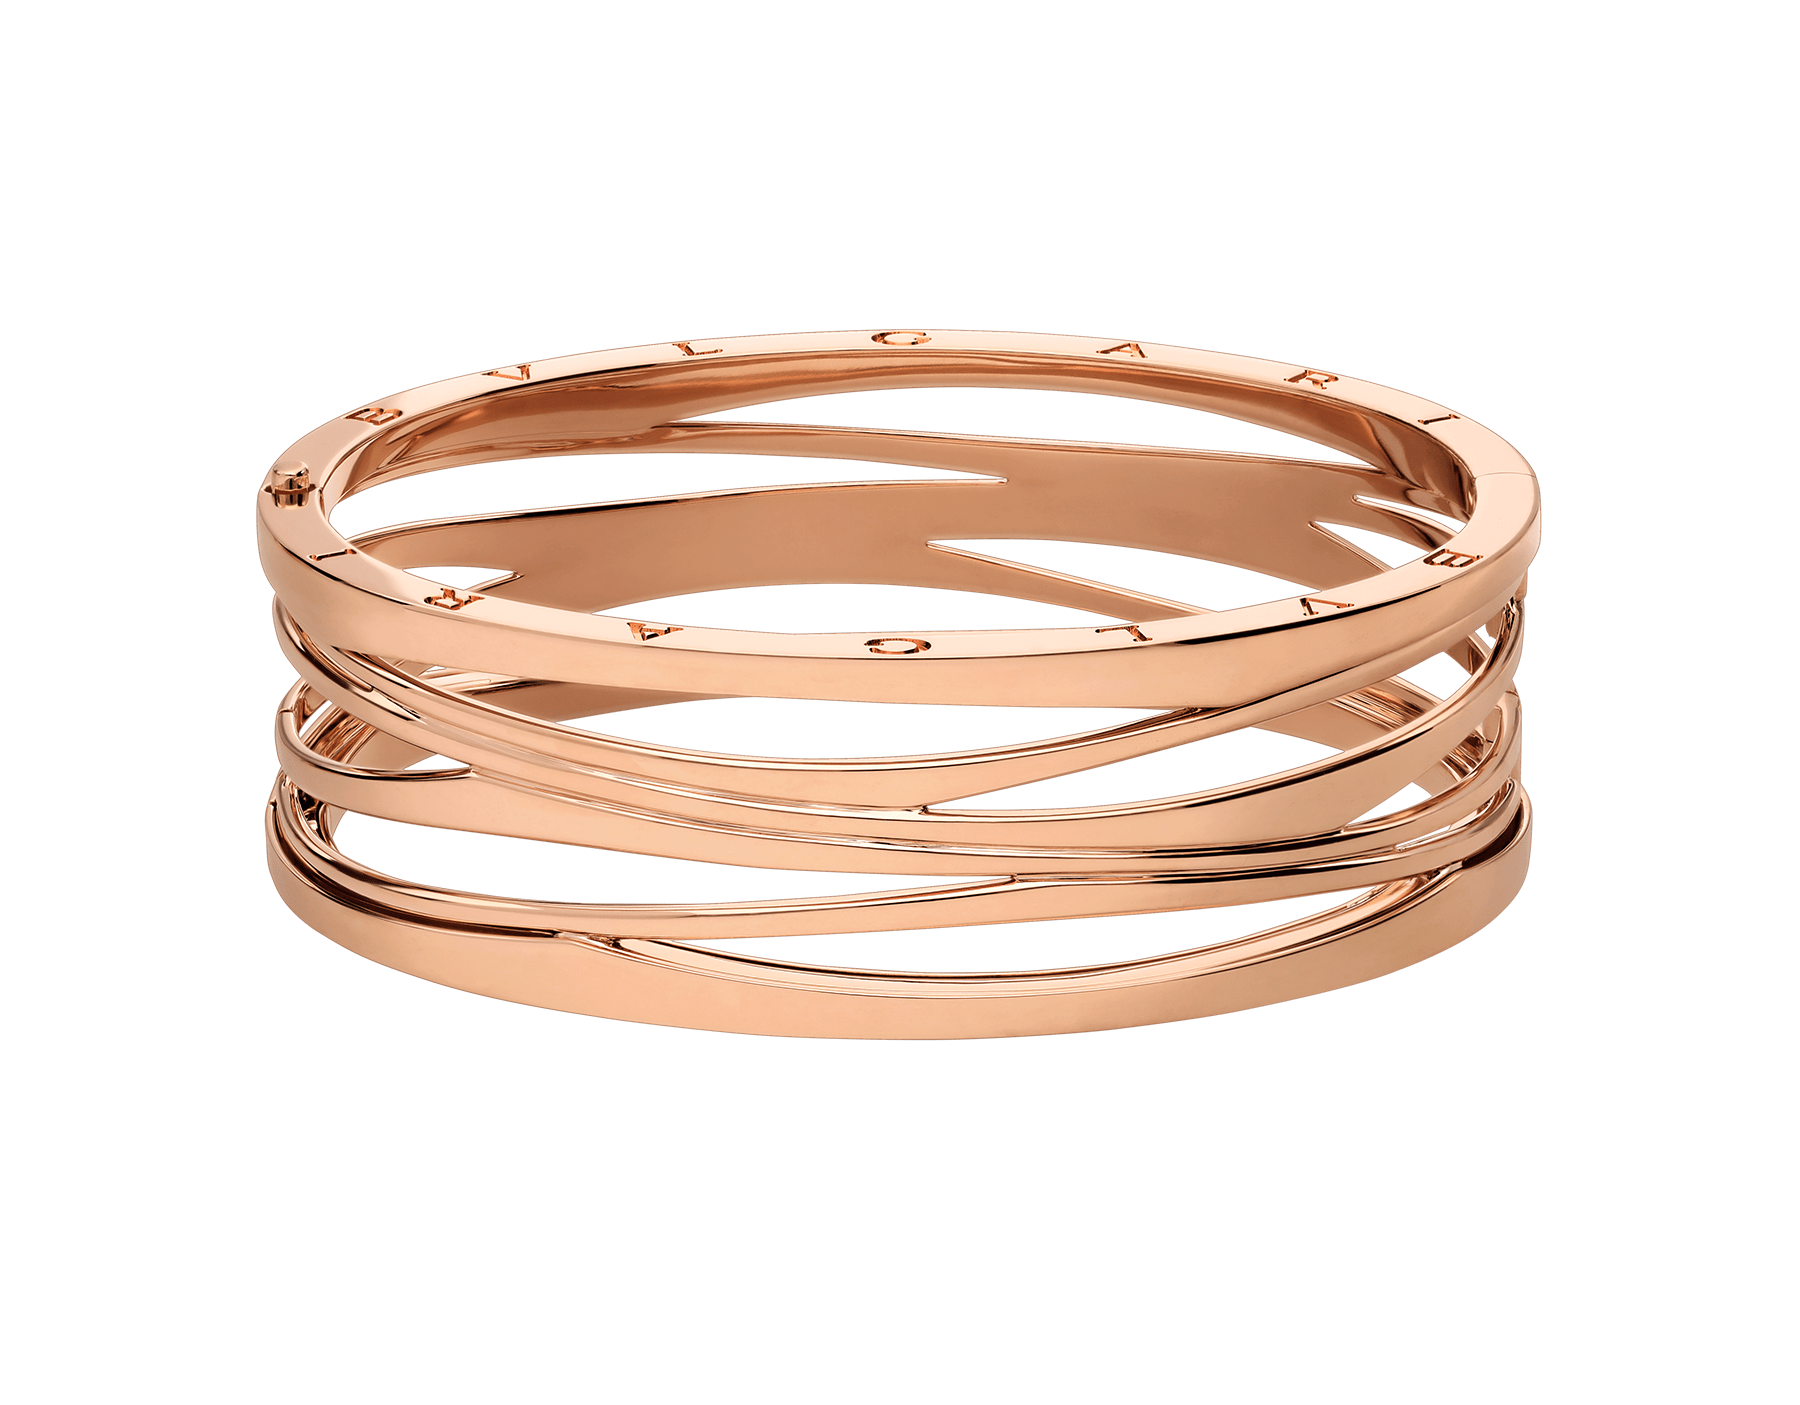 B.zero1 Design Legend bangle bracelet in 18 kt rose gold. BR858070 image 2